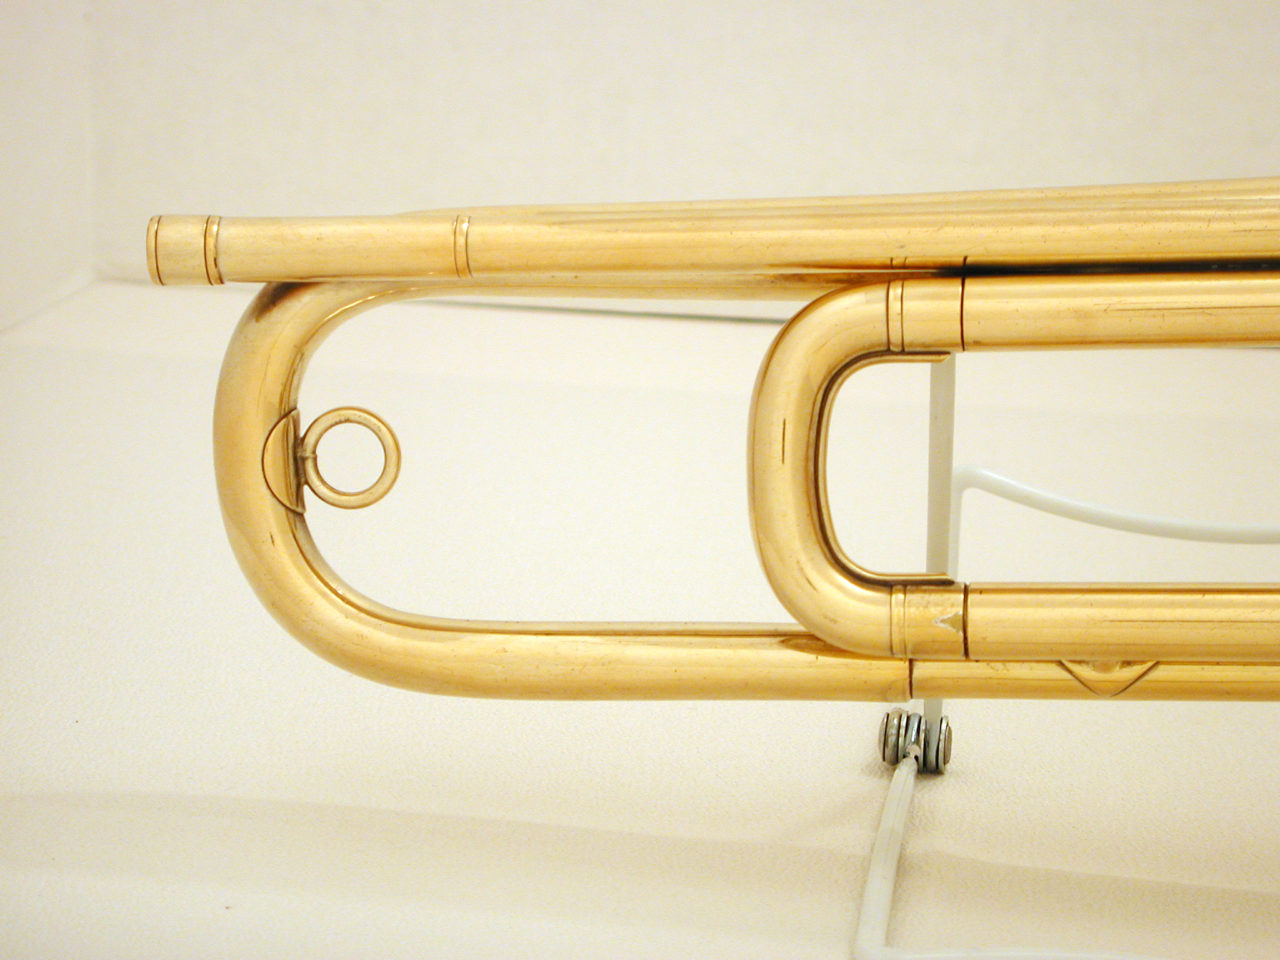 Fig. 3, Apollo Bugle Tuning Slide Detail